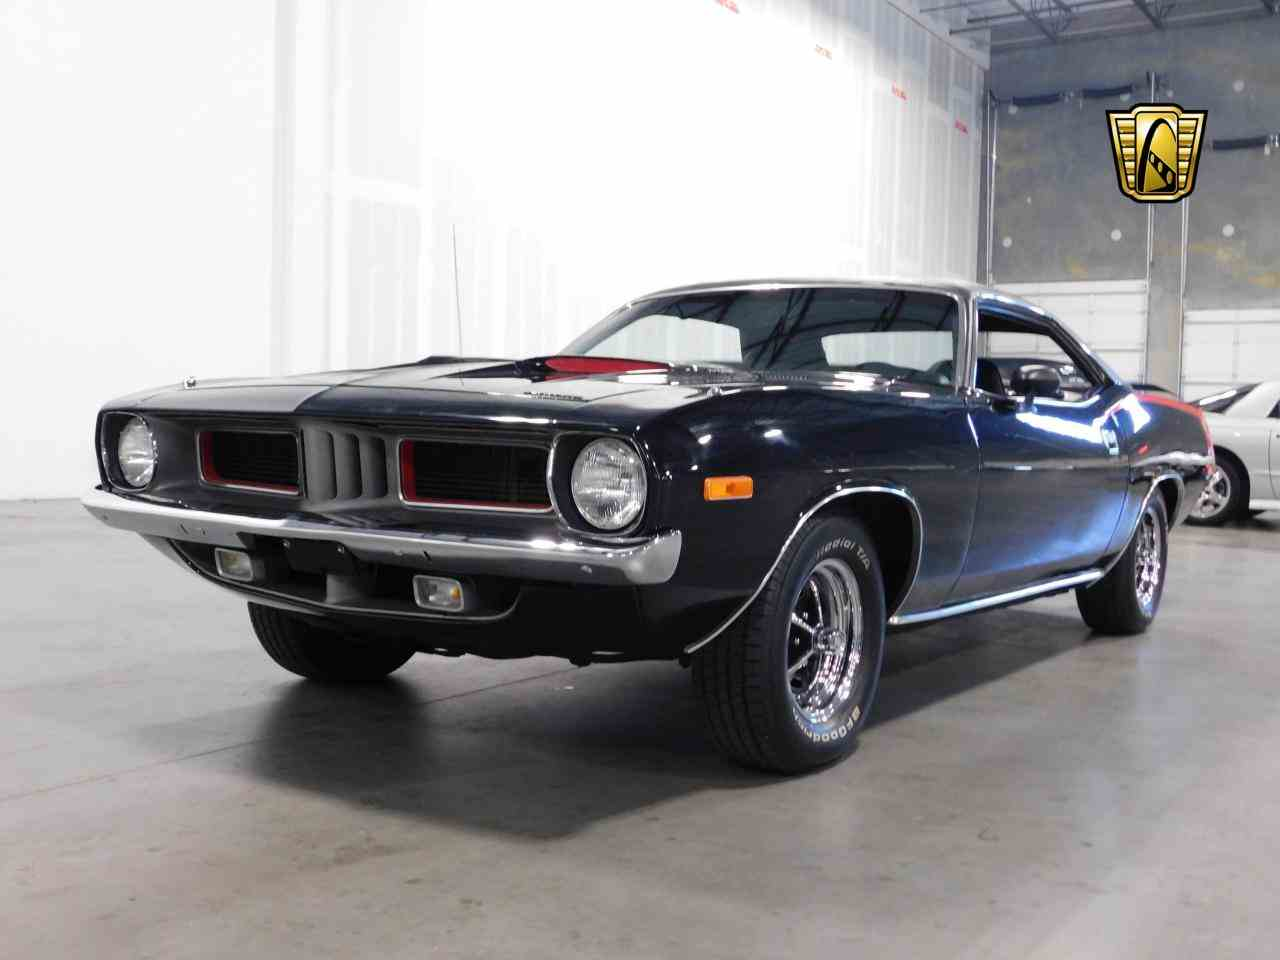 Large Picture of Classic 1972 Barracuda located in Georgia - $44,995.00 Offered by Gateway Classic Cars - Atlanta - MZG1